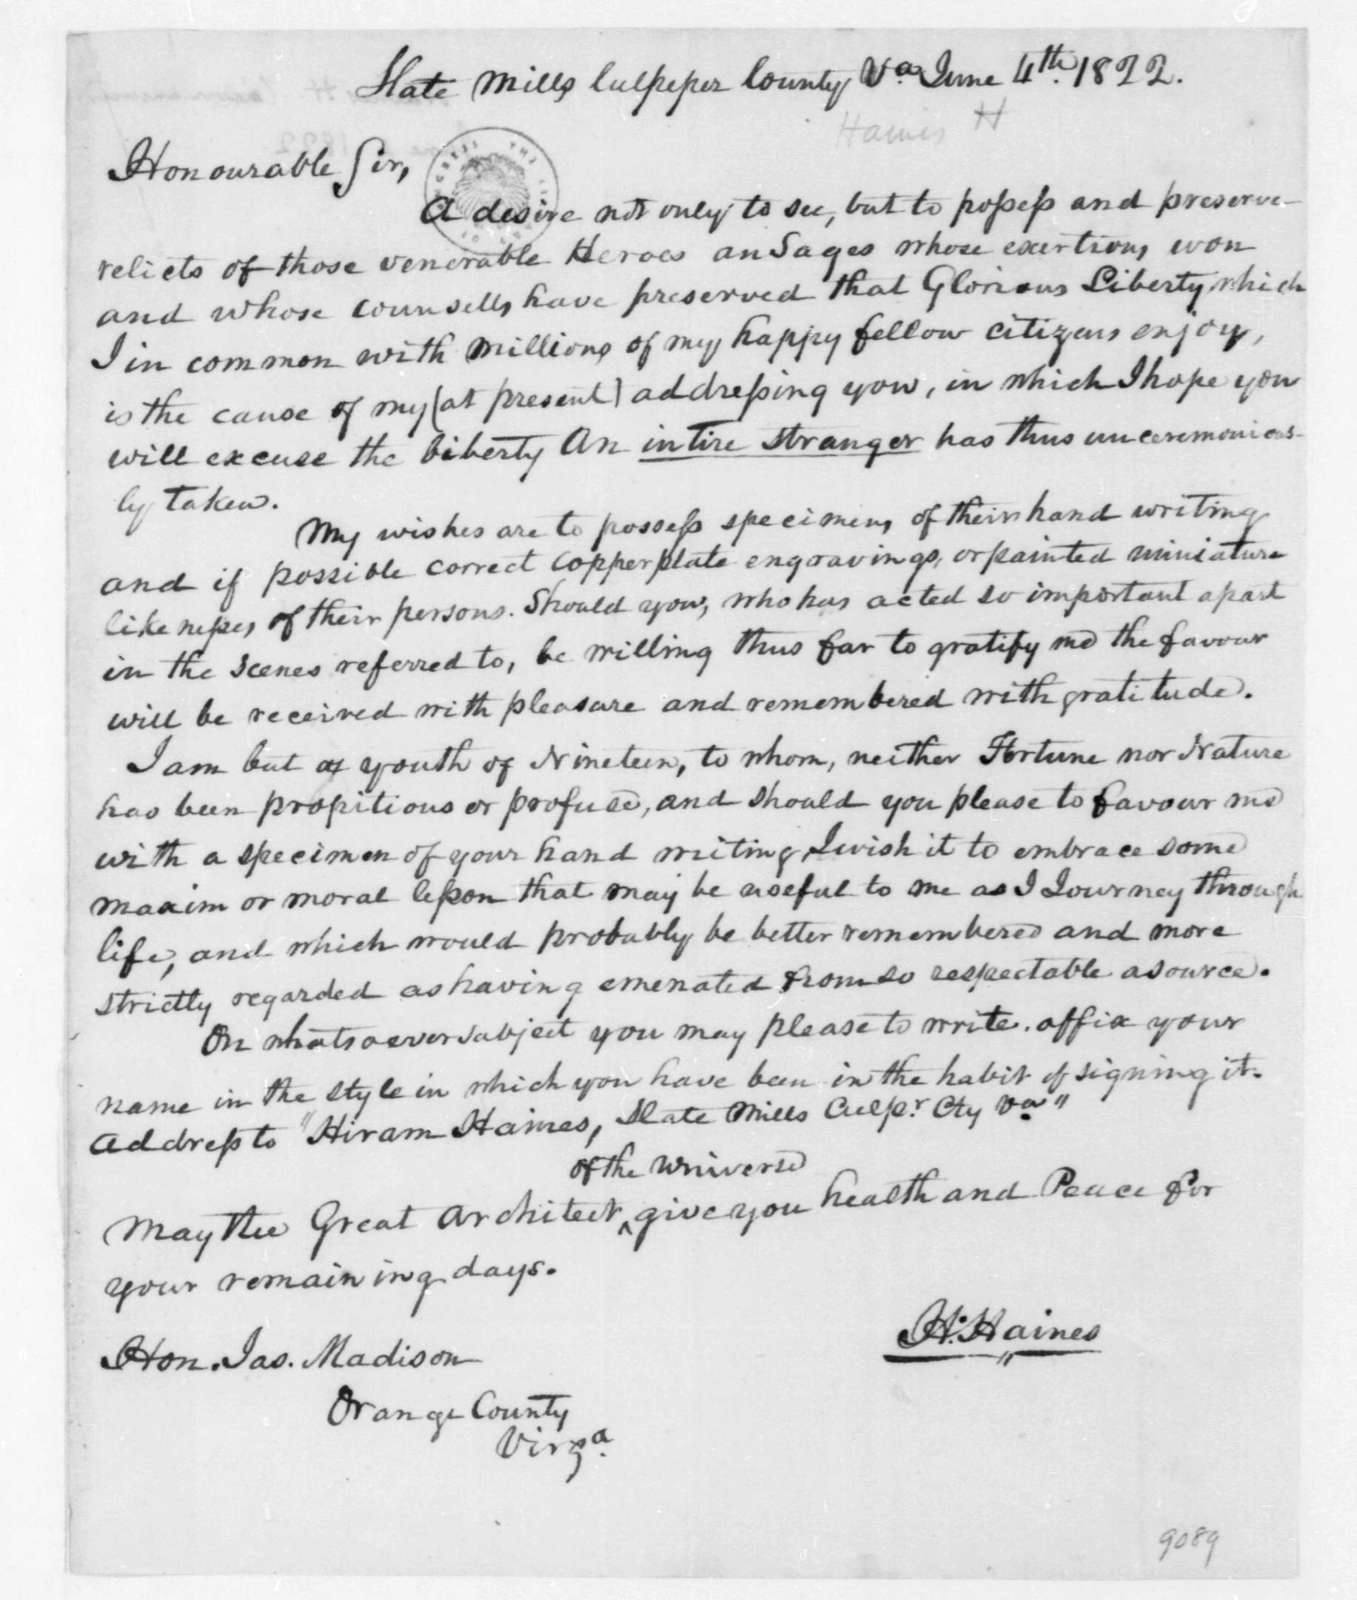 H. Haines to James Madison, June 4, 1822.